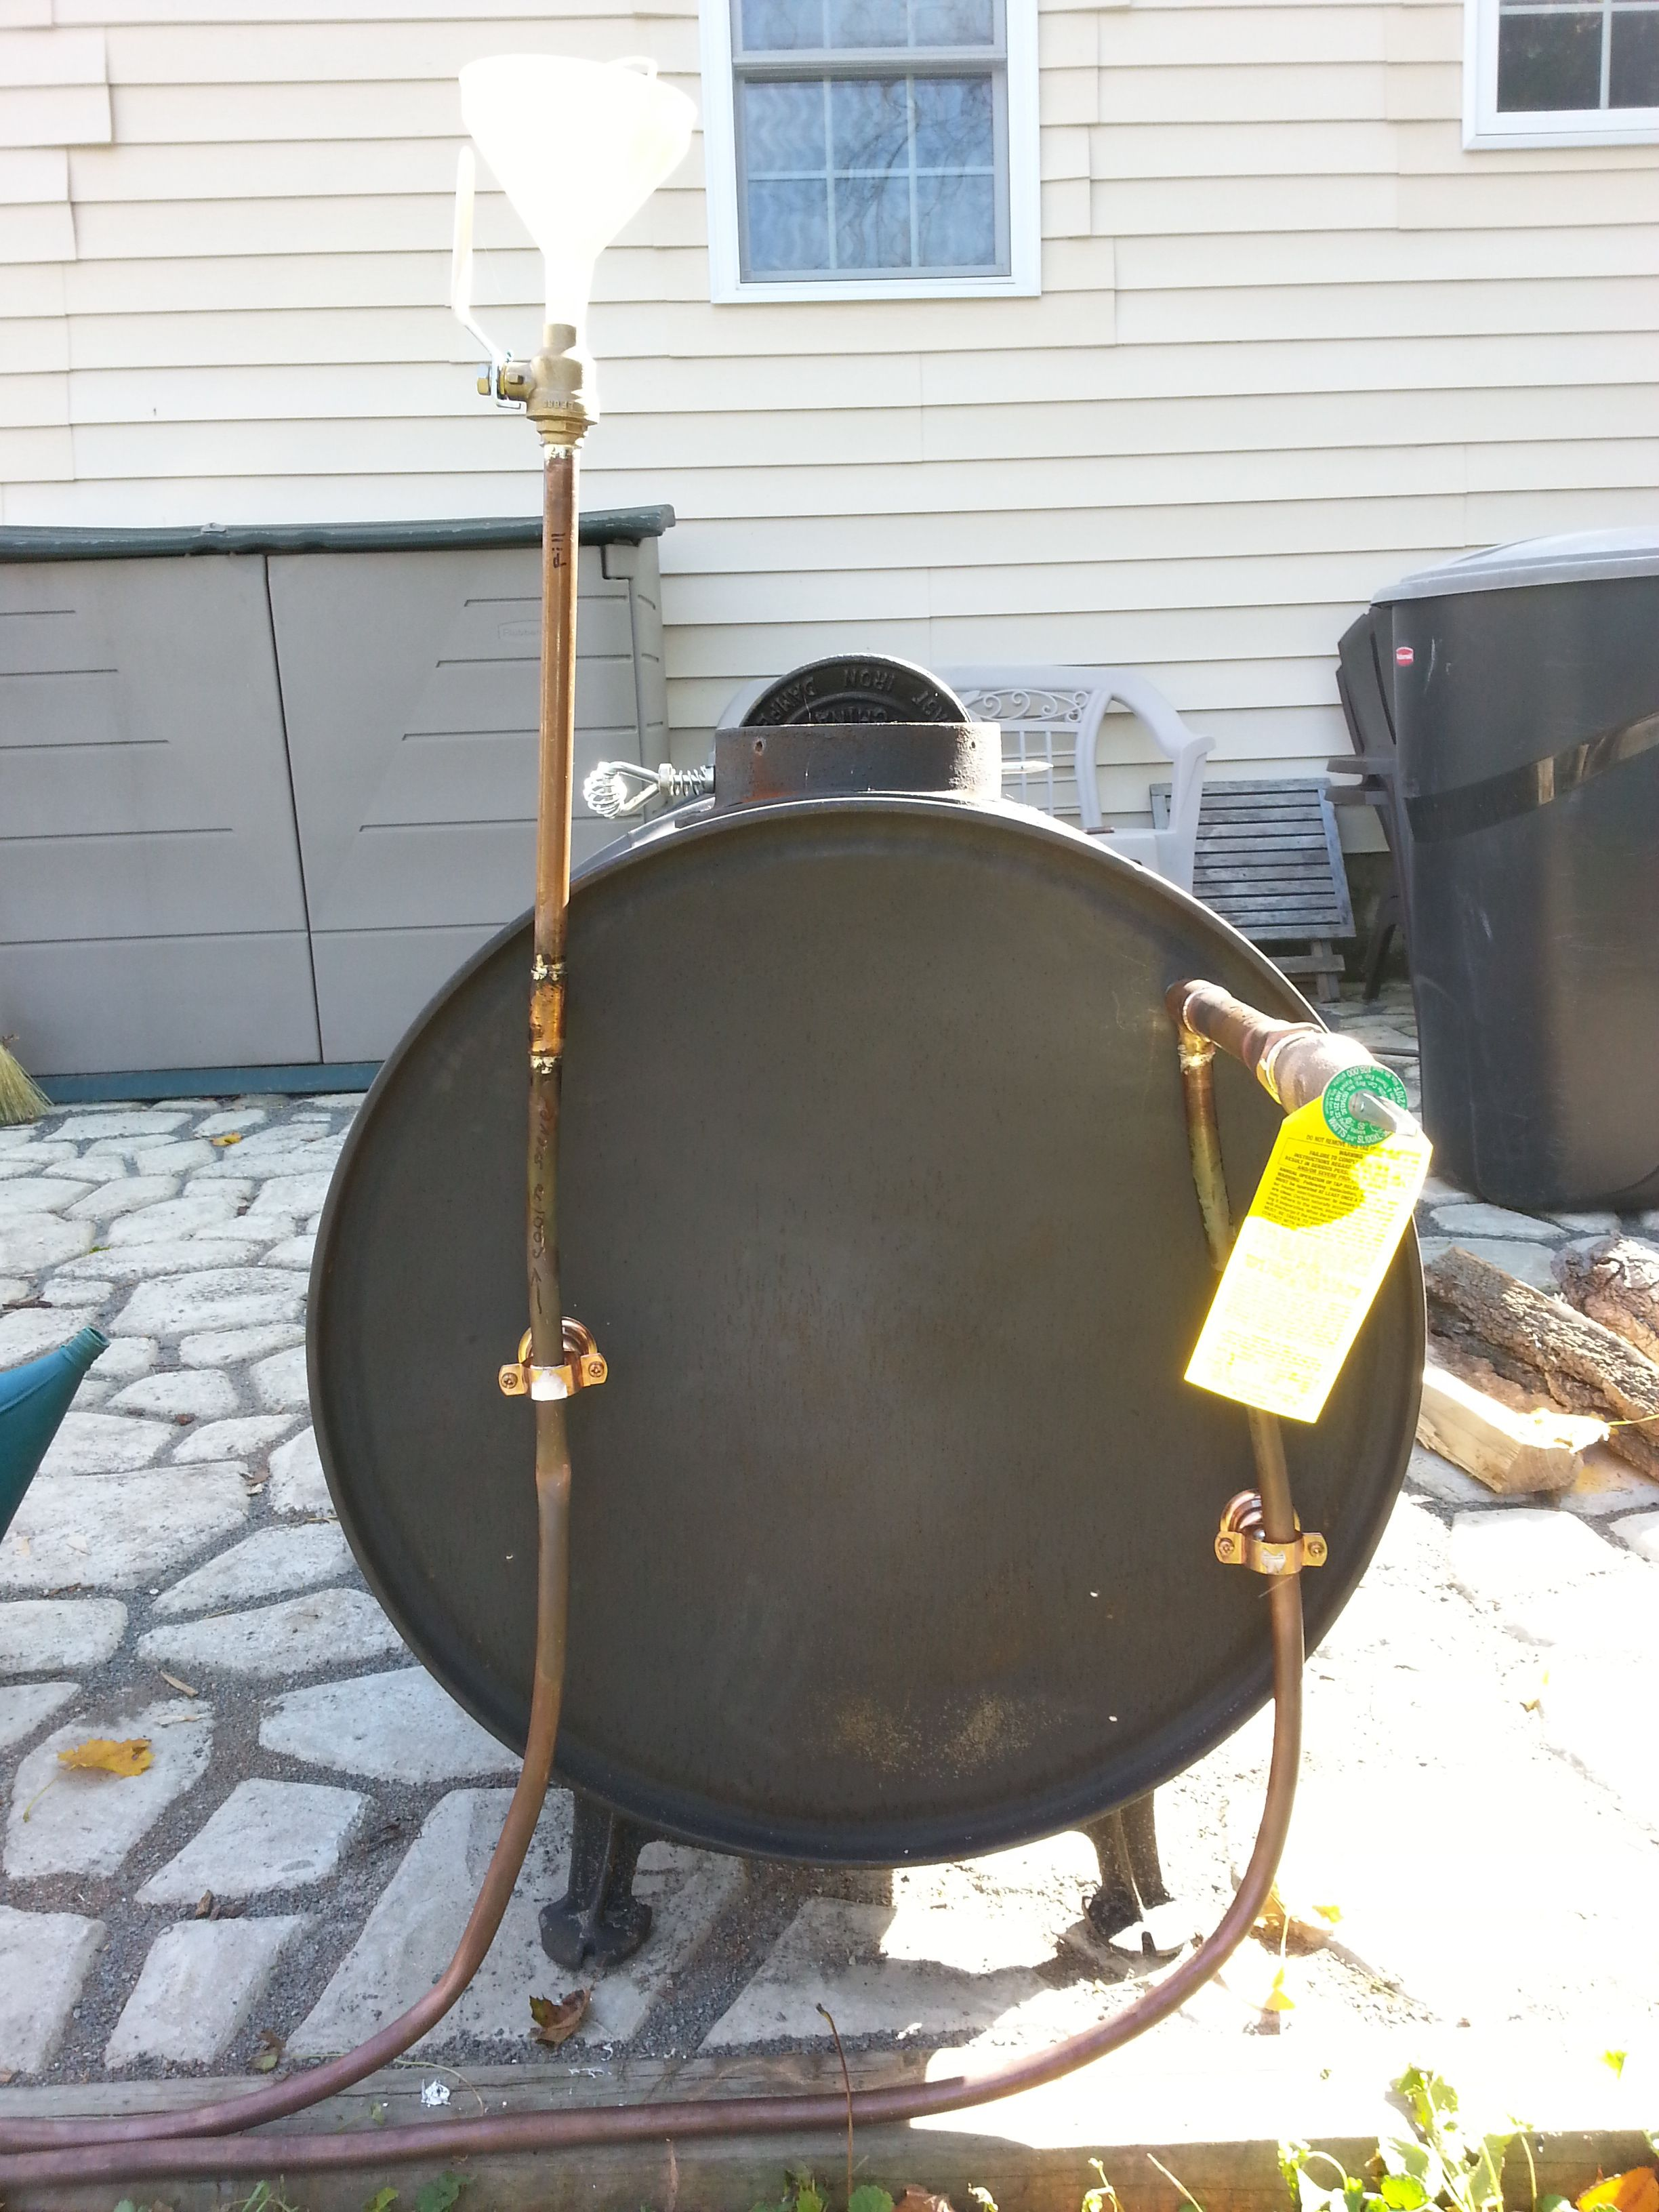 Barrel Stove, 55 gallon drum, stove kit, barrel stove kit ... on backyard lights, backyard kilns, backyard awnings, backyard tools, backyard roofing, backyard doors, backyard coolers,